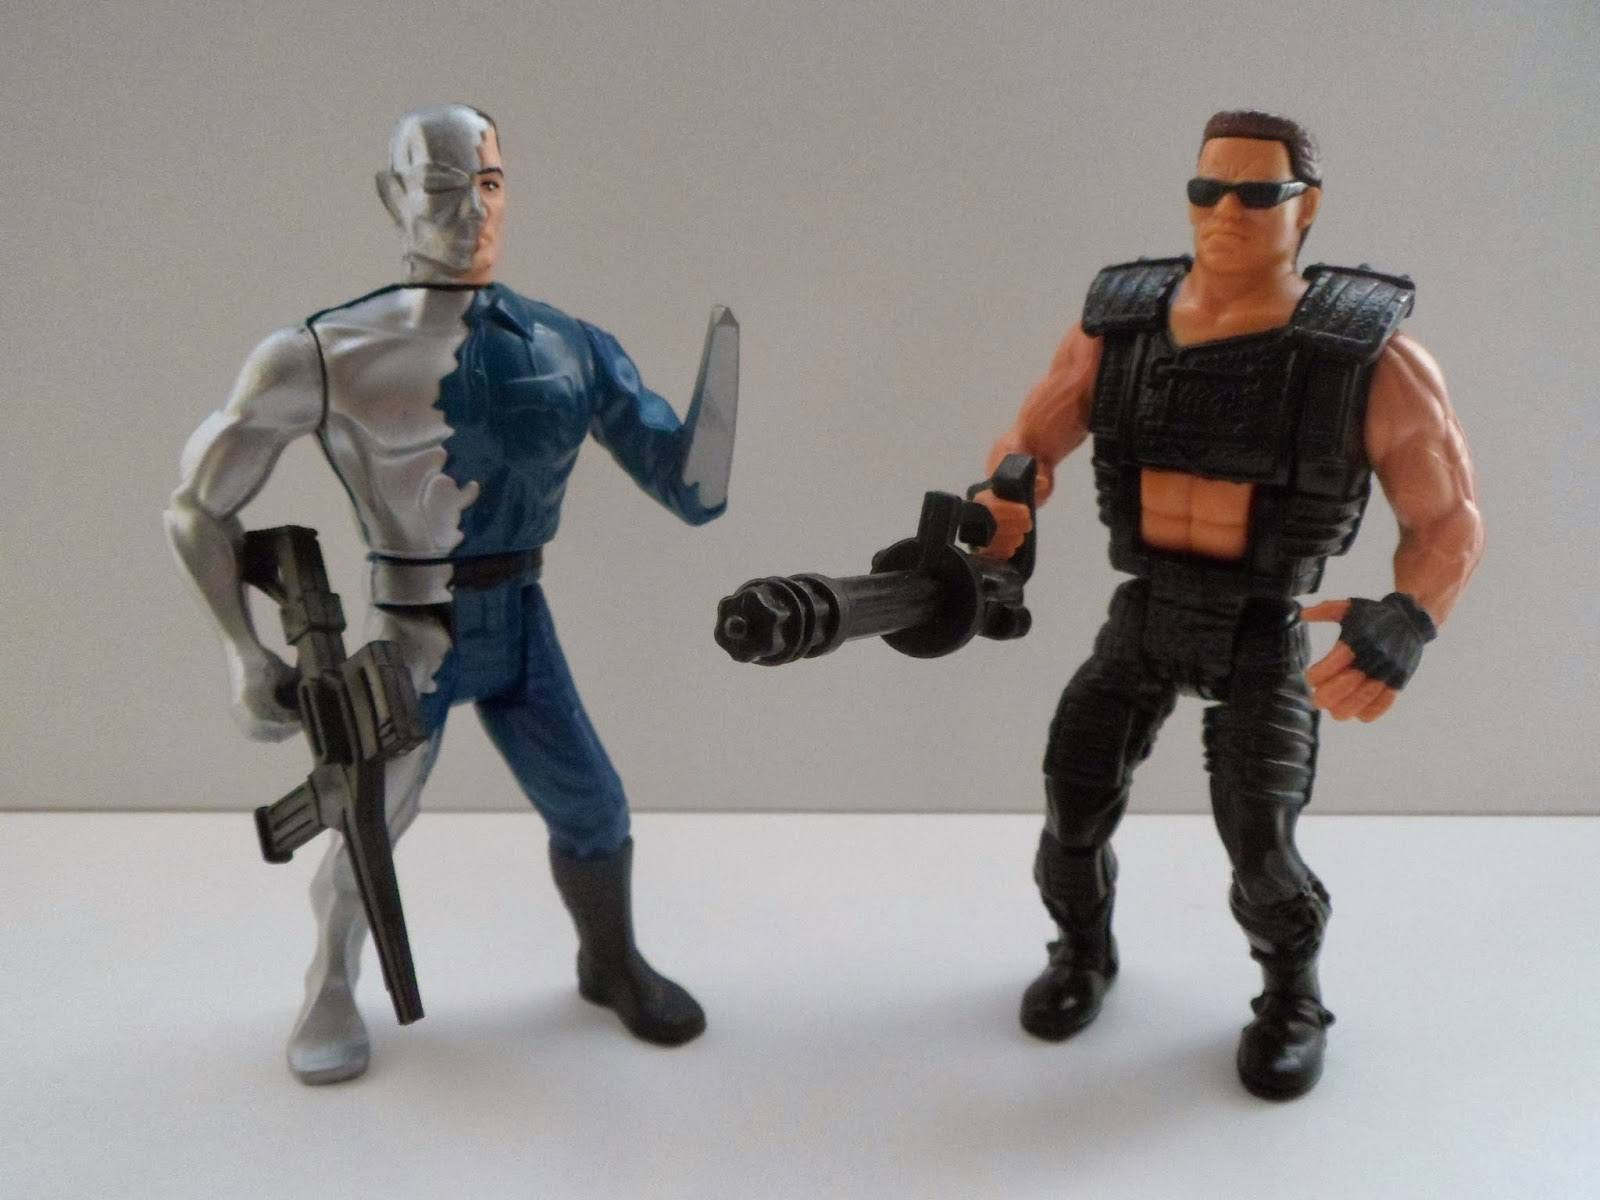 PIC 10 10 Facts About Terminator 2 That Deserve A Thumbs-Up